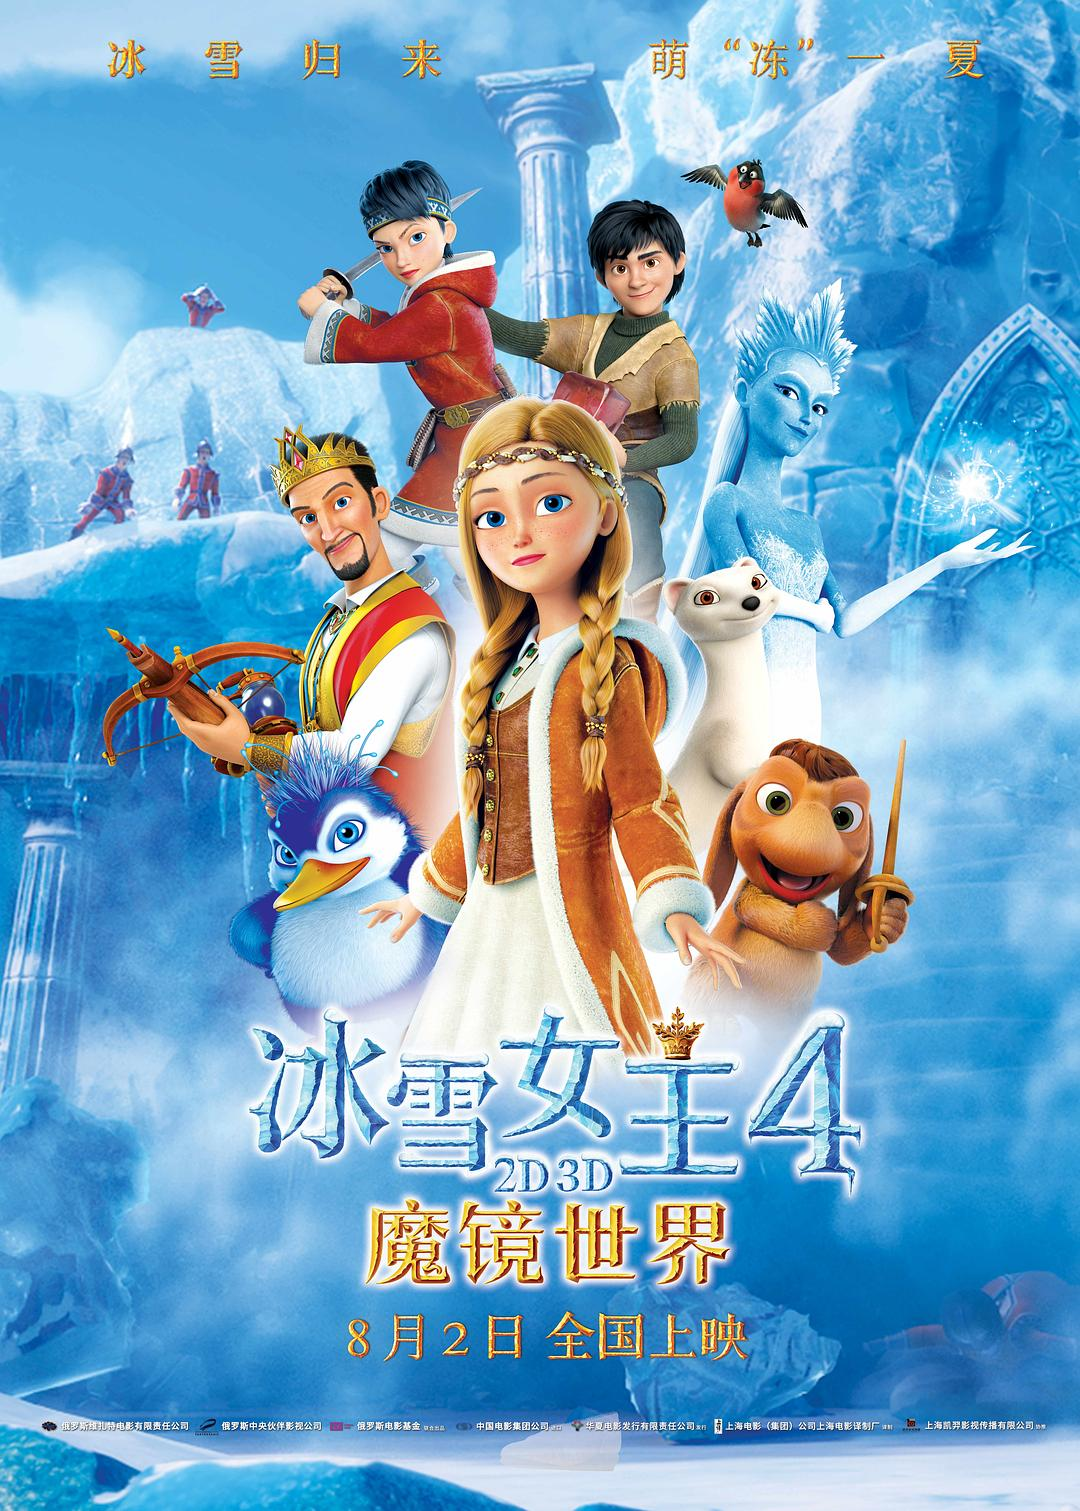 冰雪女王4:魔镜世界 The Snow Queen: Mirrorlands